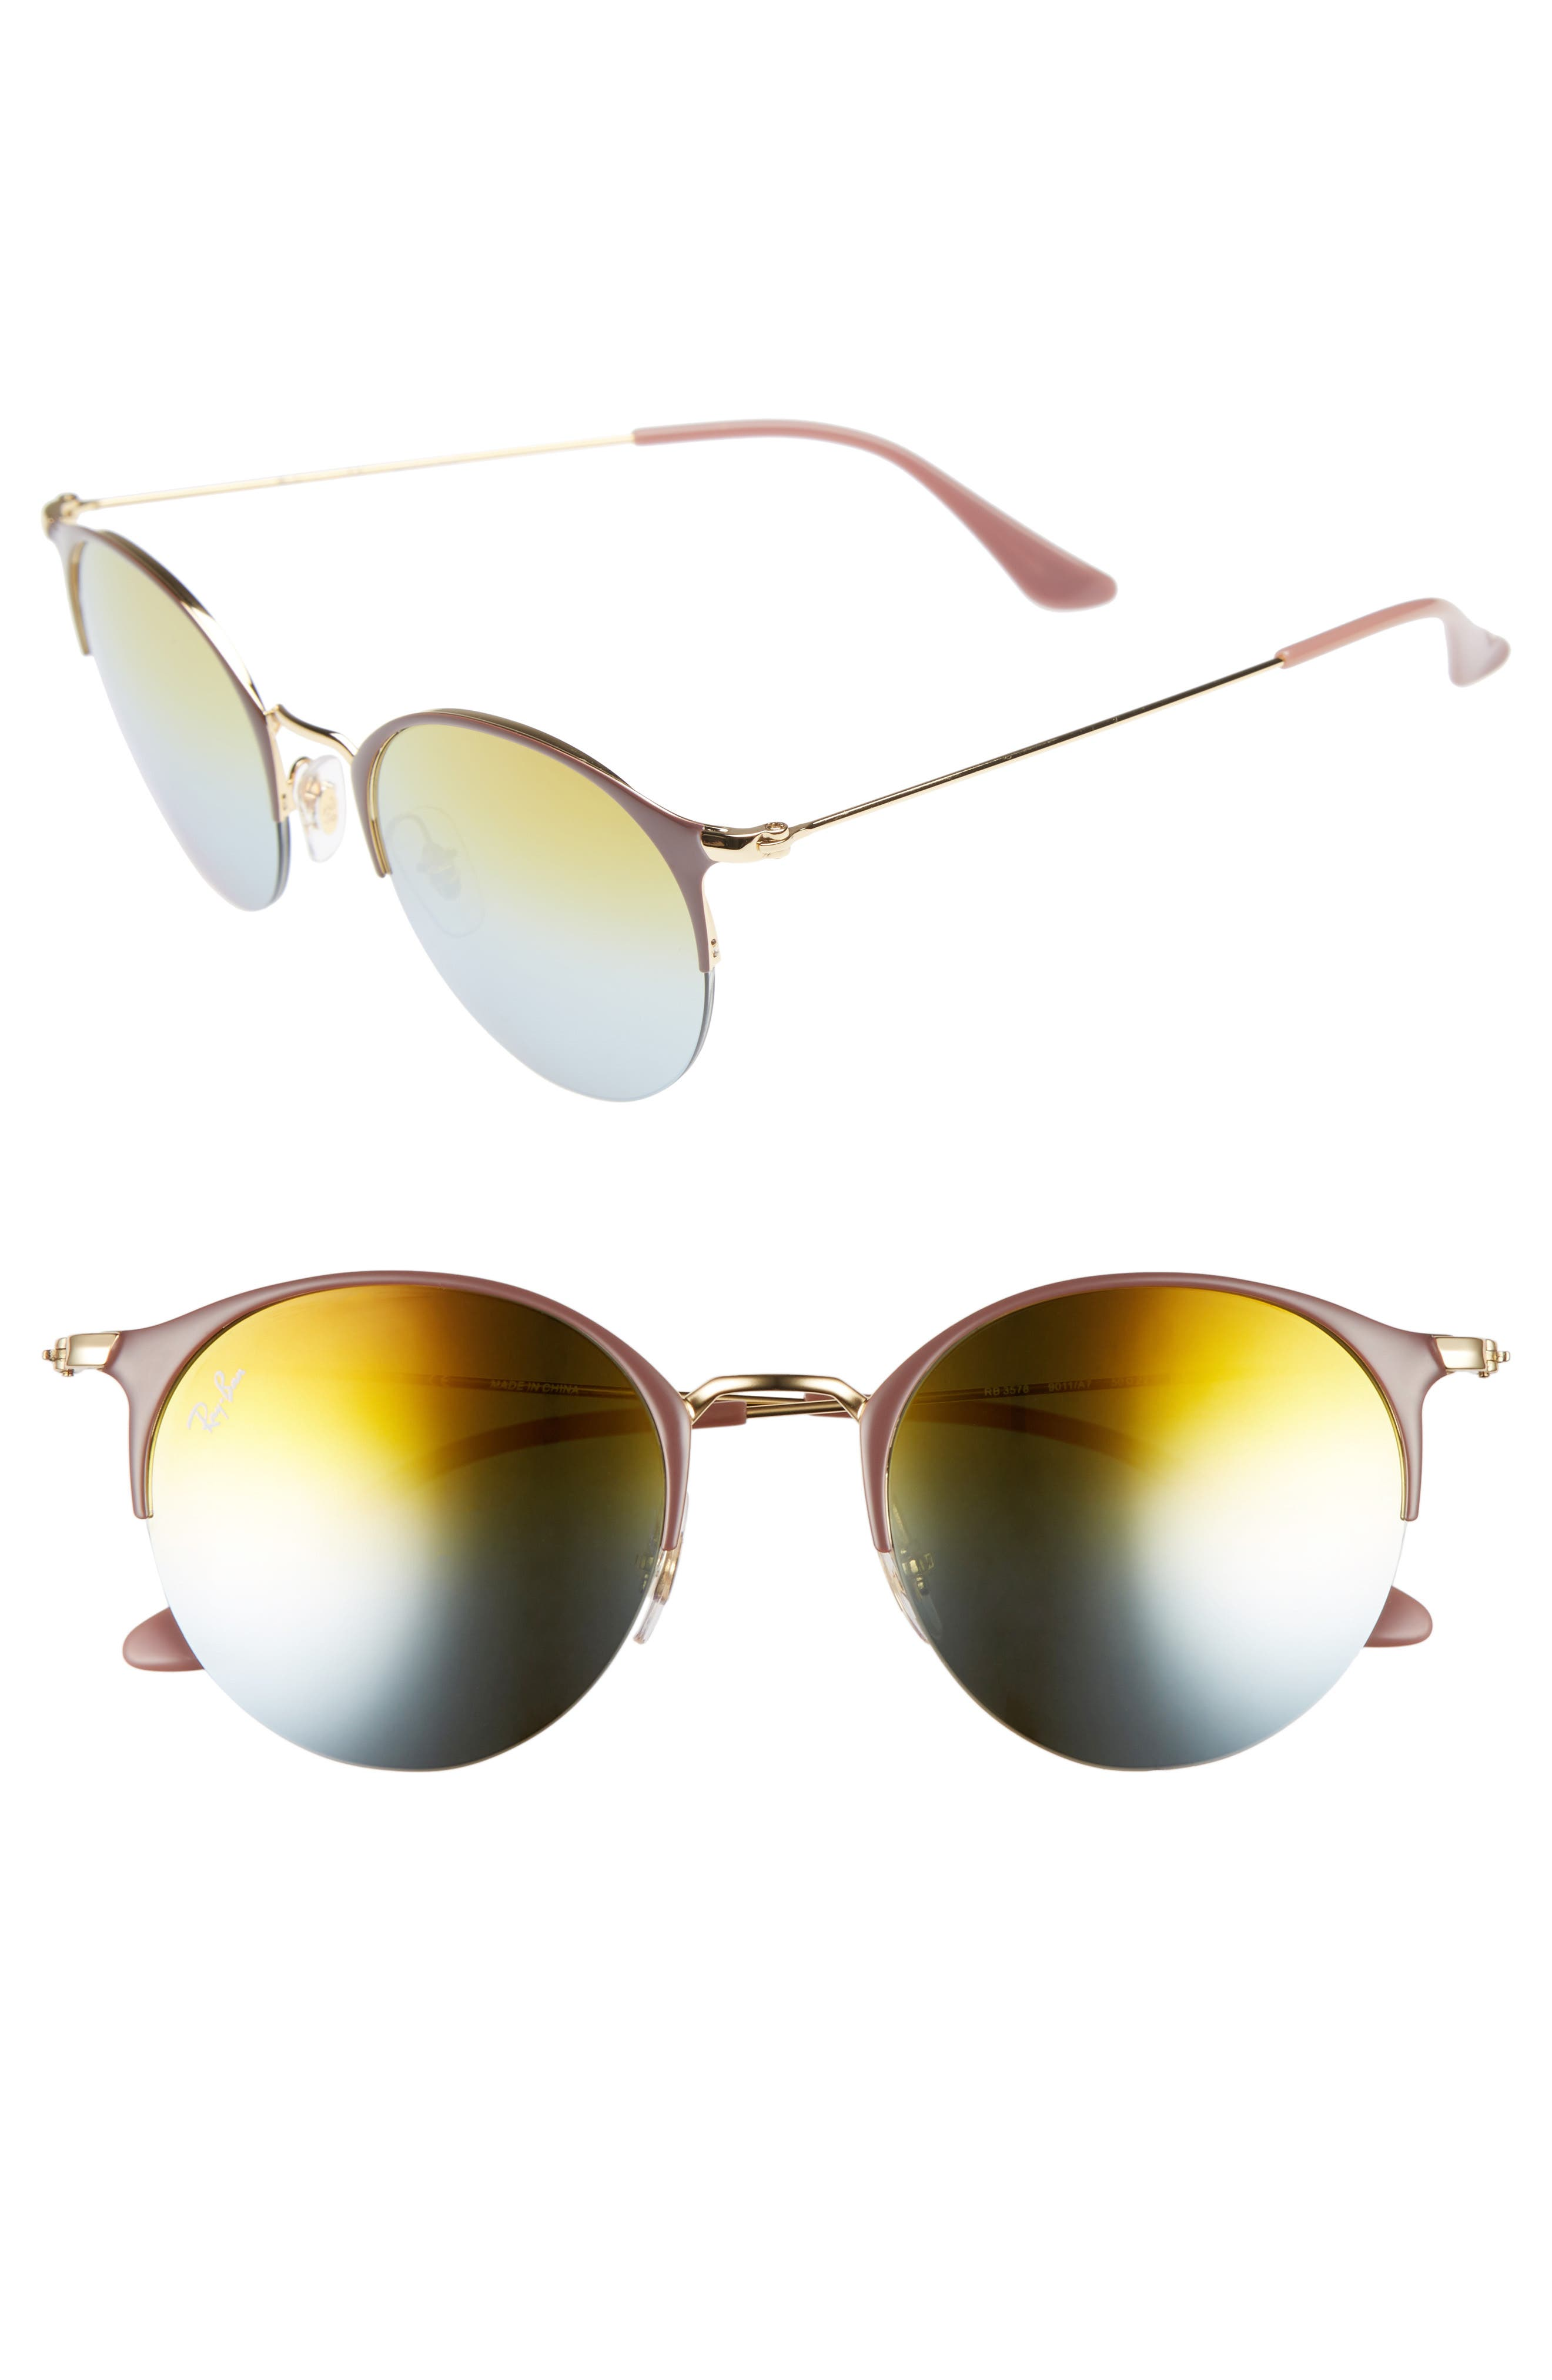 50mm Round Sunglasses,                             Main thumbnail 1, color,                             GOLD TOP/ GREEN GRADIENT